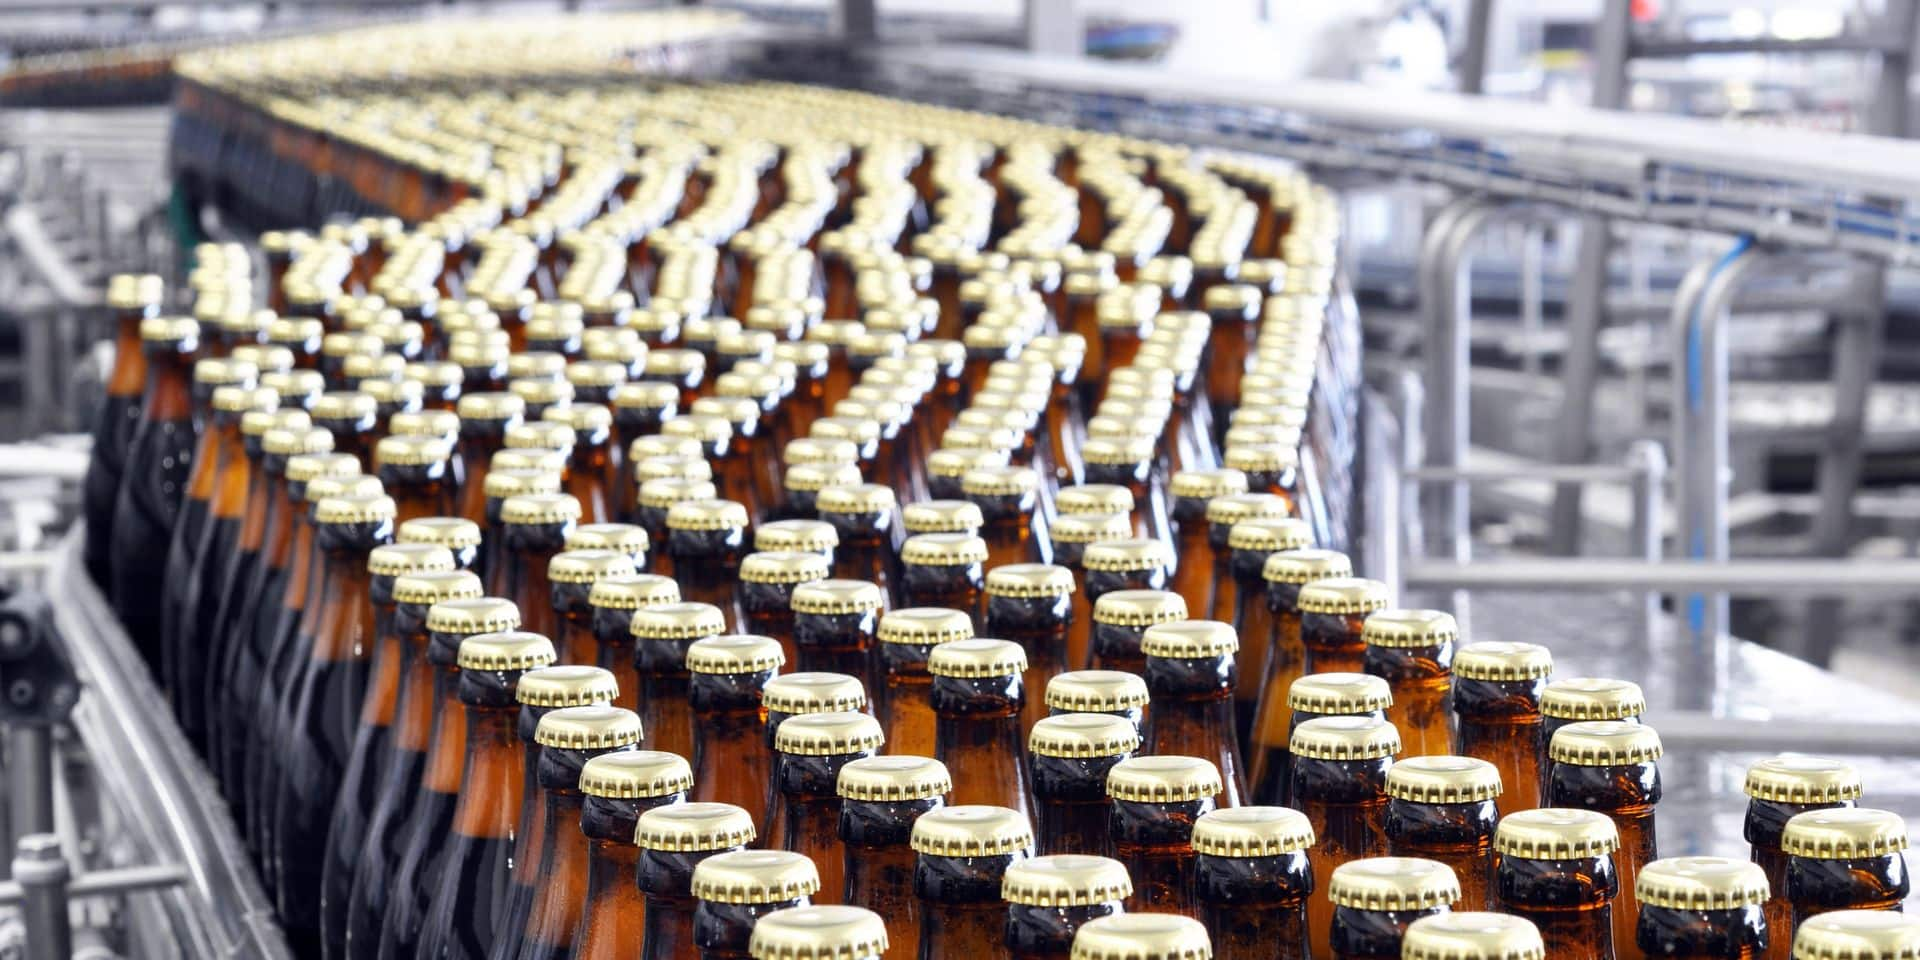 Beer,Filling,In,A,Brewery,-,Conveyor,Belt,With,Glass